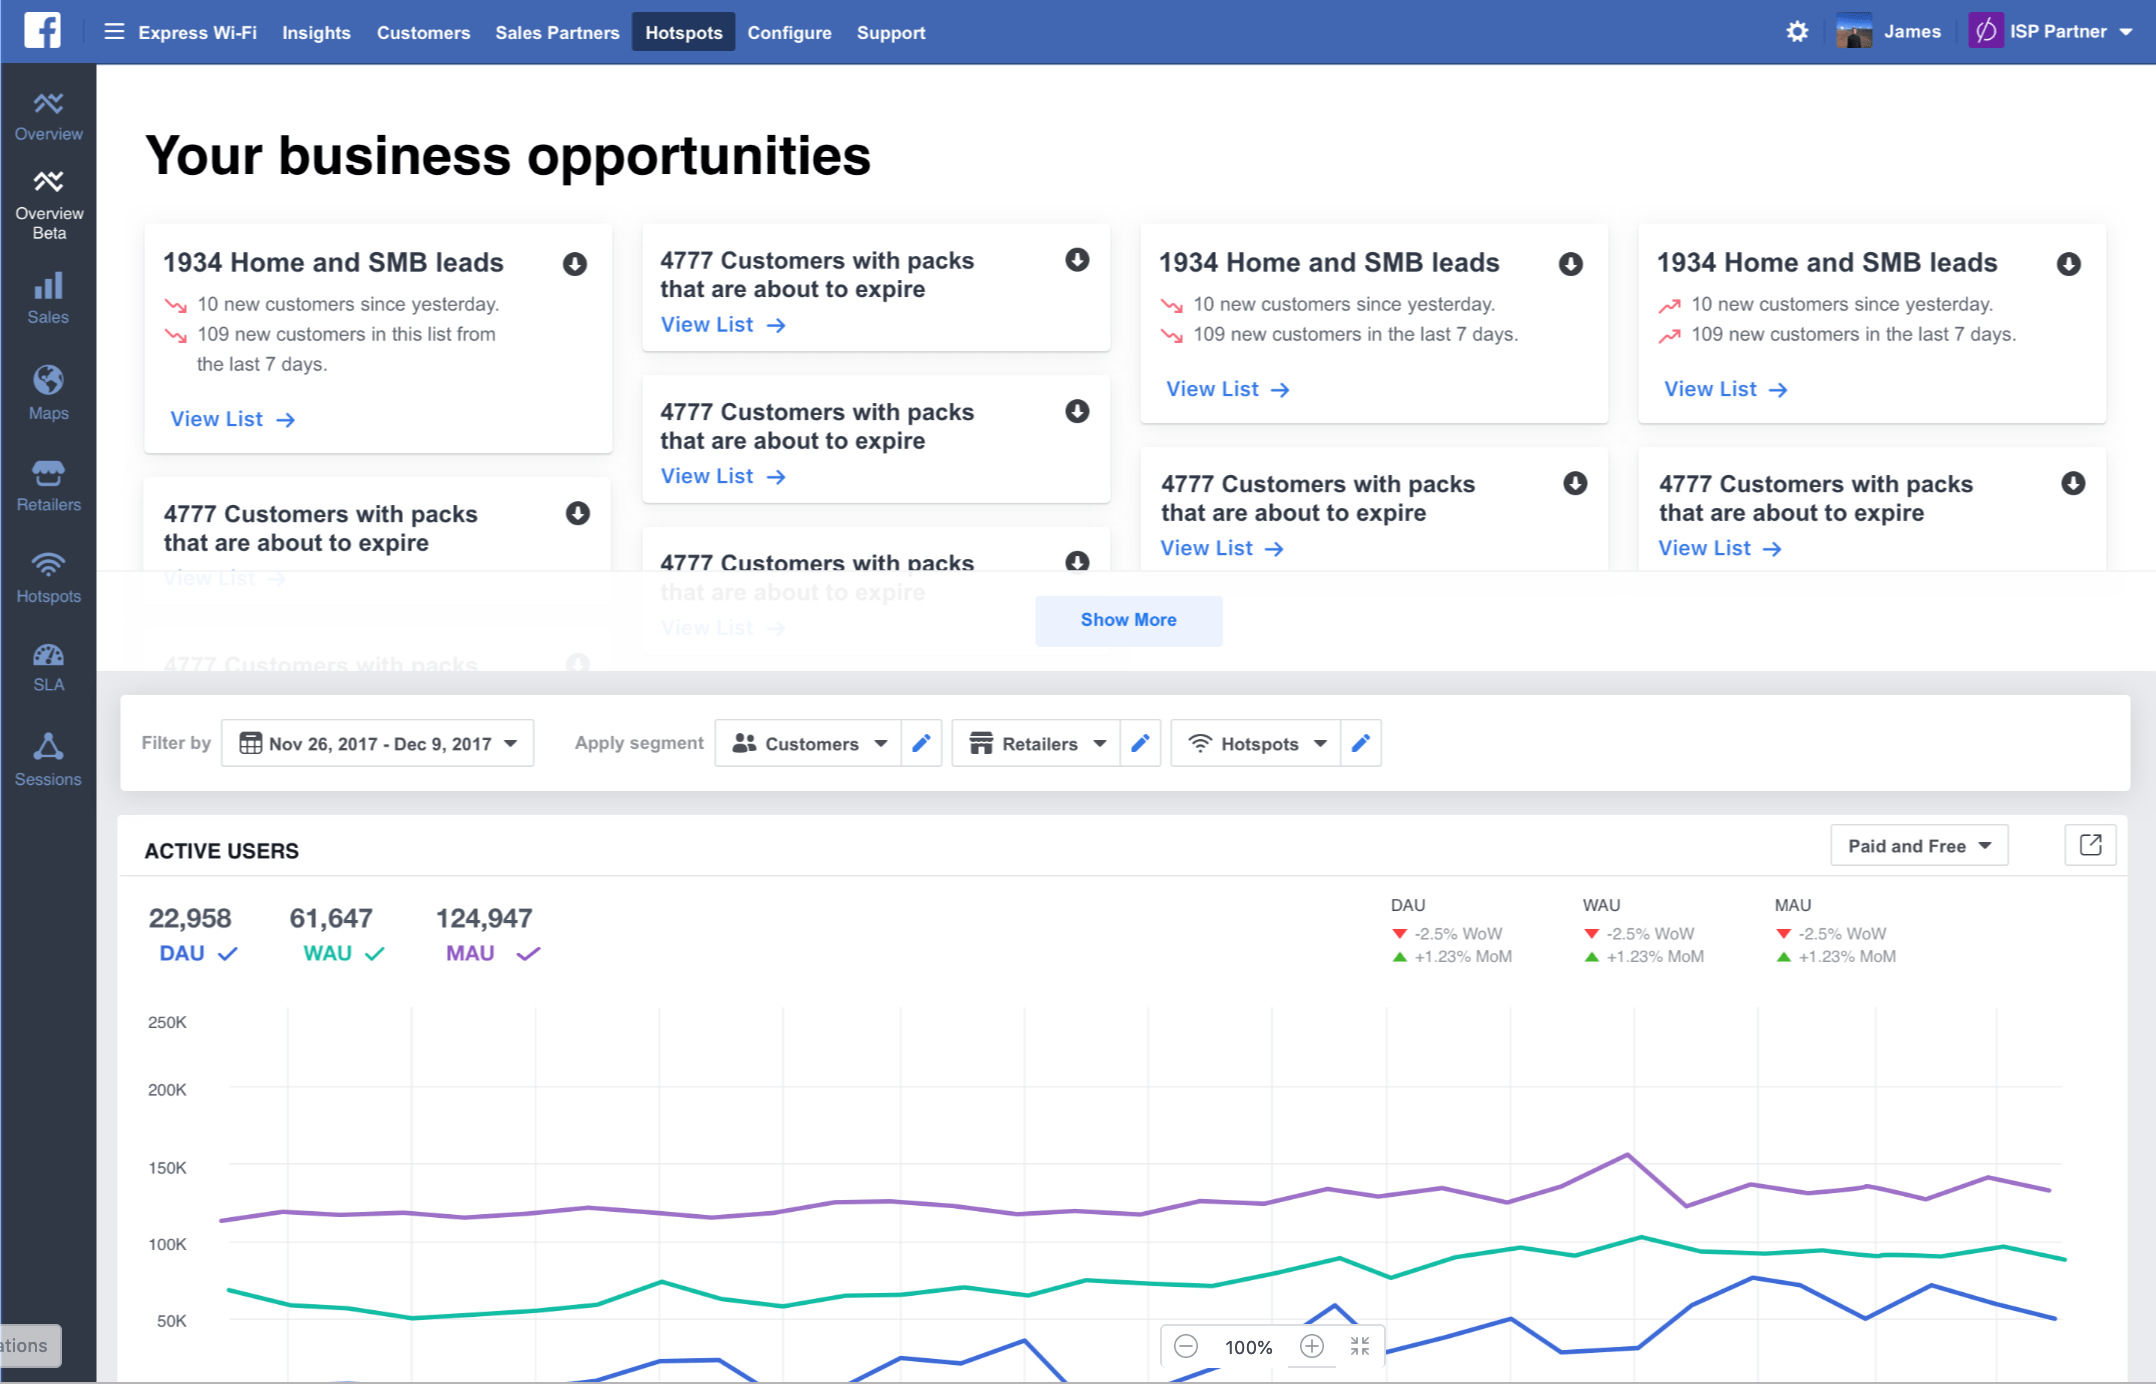 Express Wi-Fi by Facebook dashboard